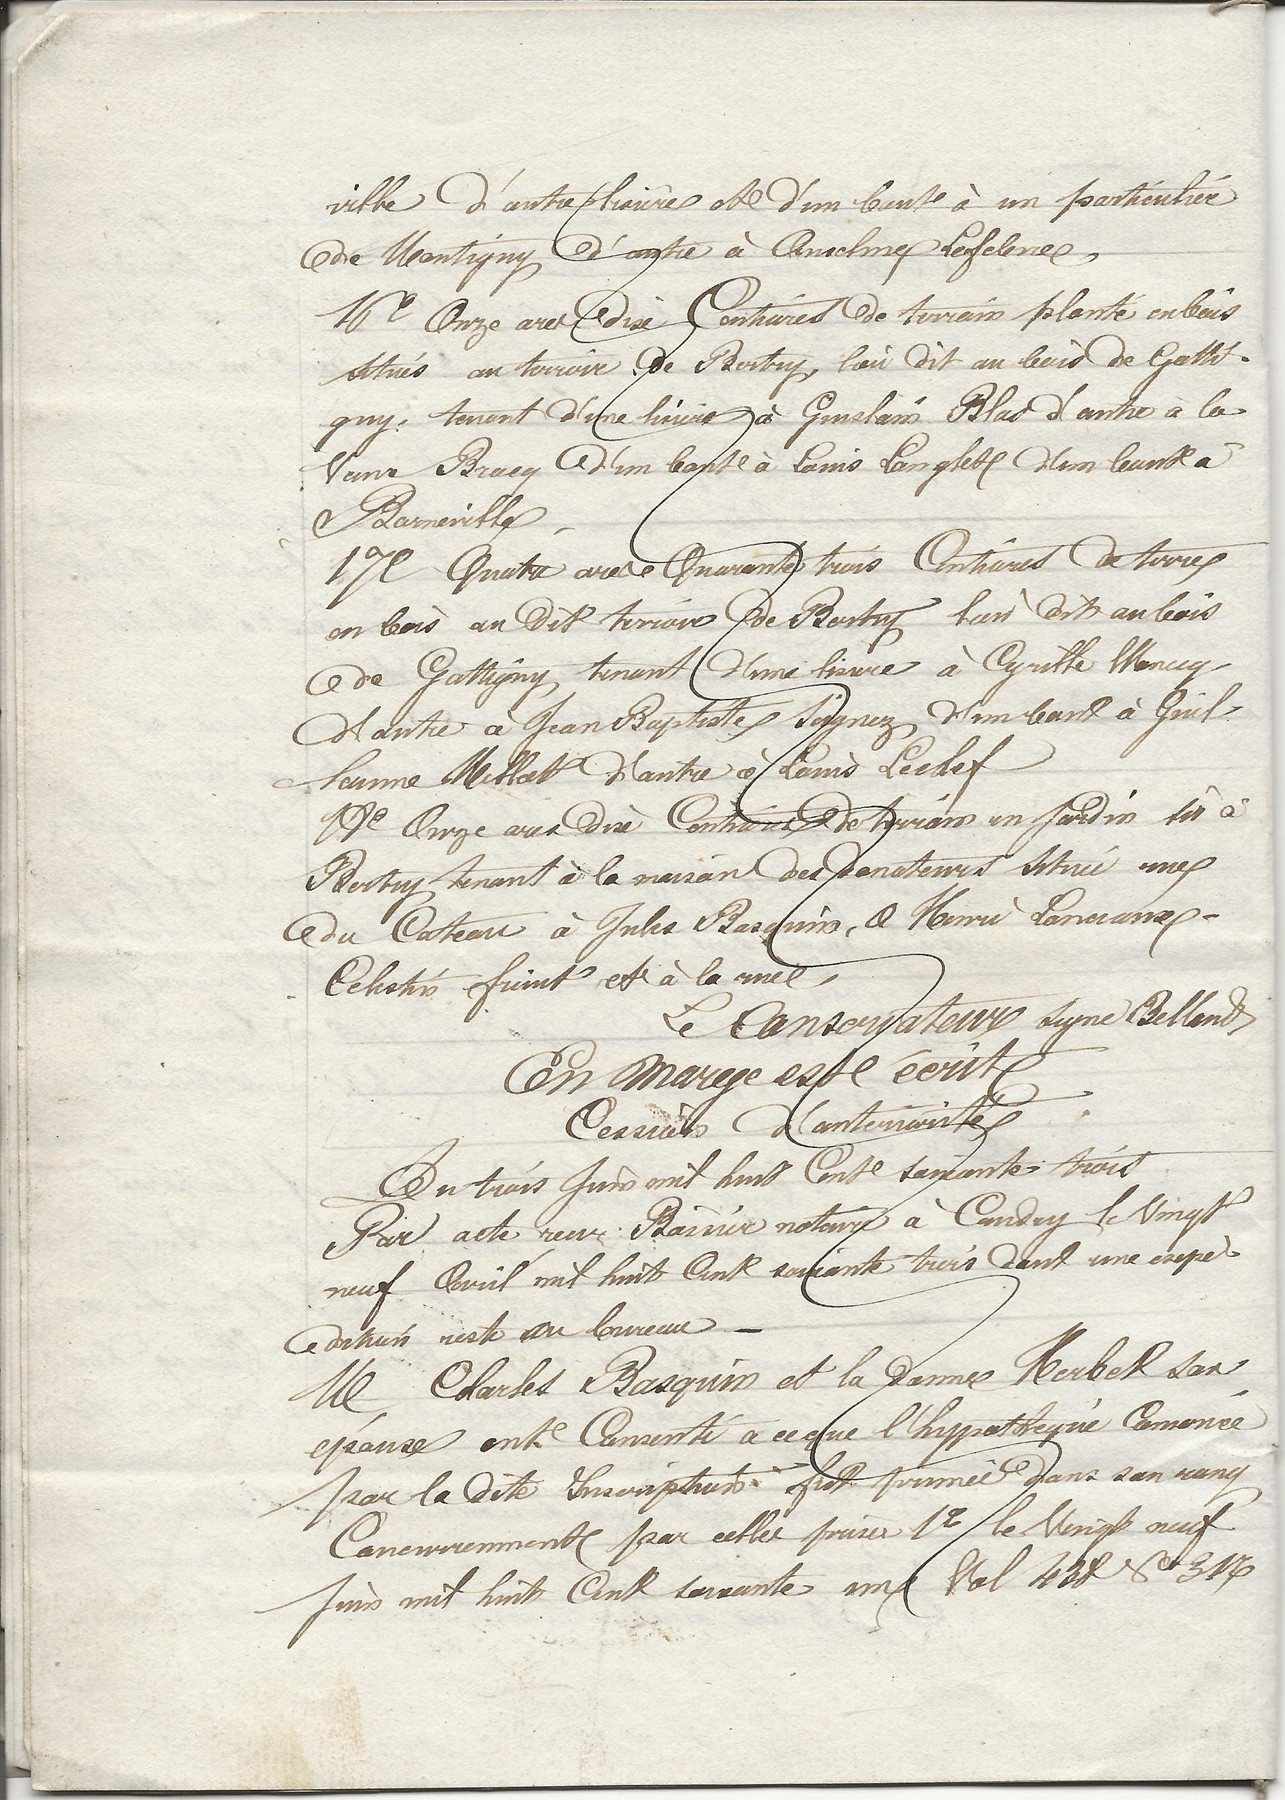 1863 document hypothecaire basquin 001 4